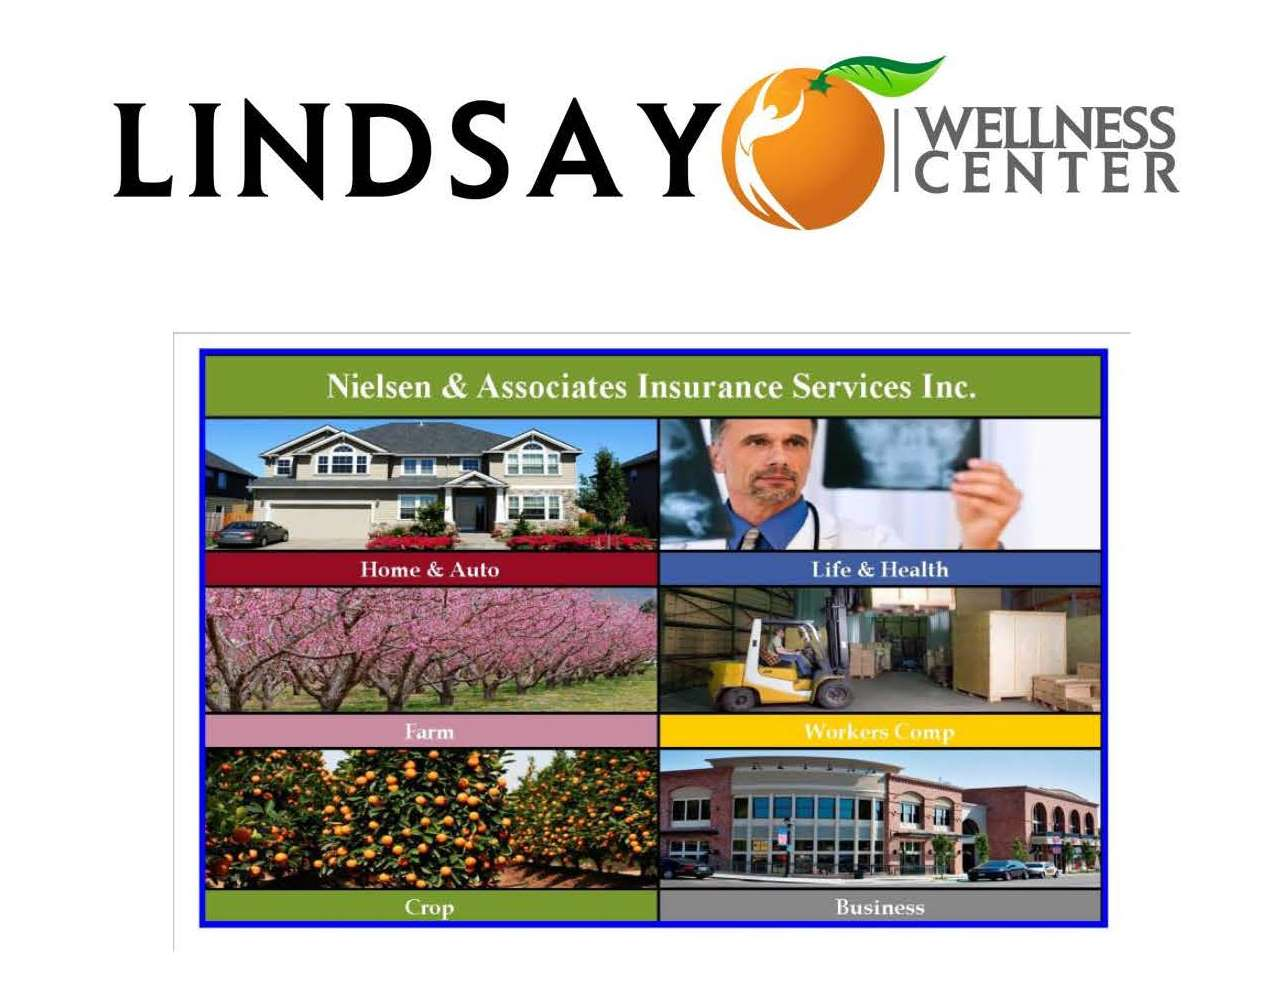 Sponsors: Nielsen & Assoc. Insurance and Lindsay Wellness Center